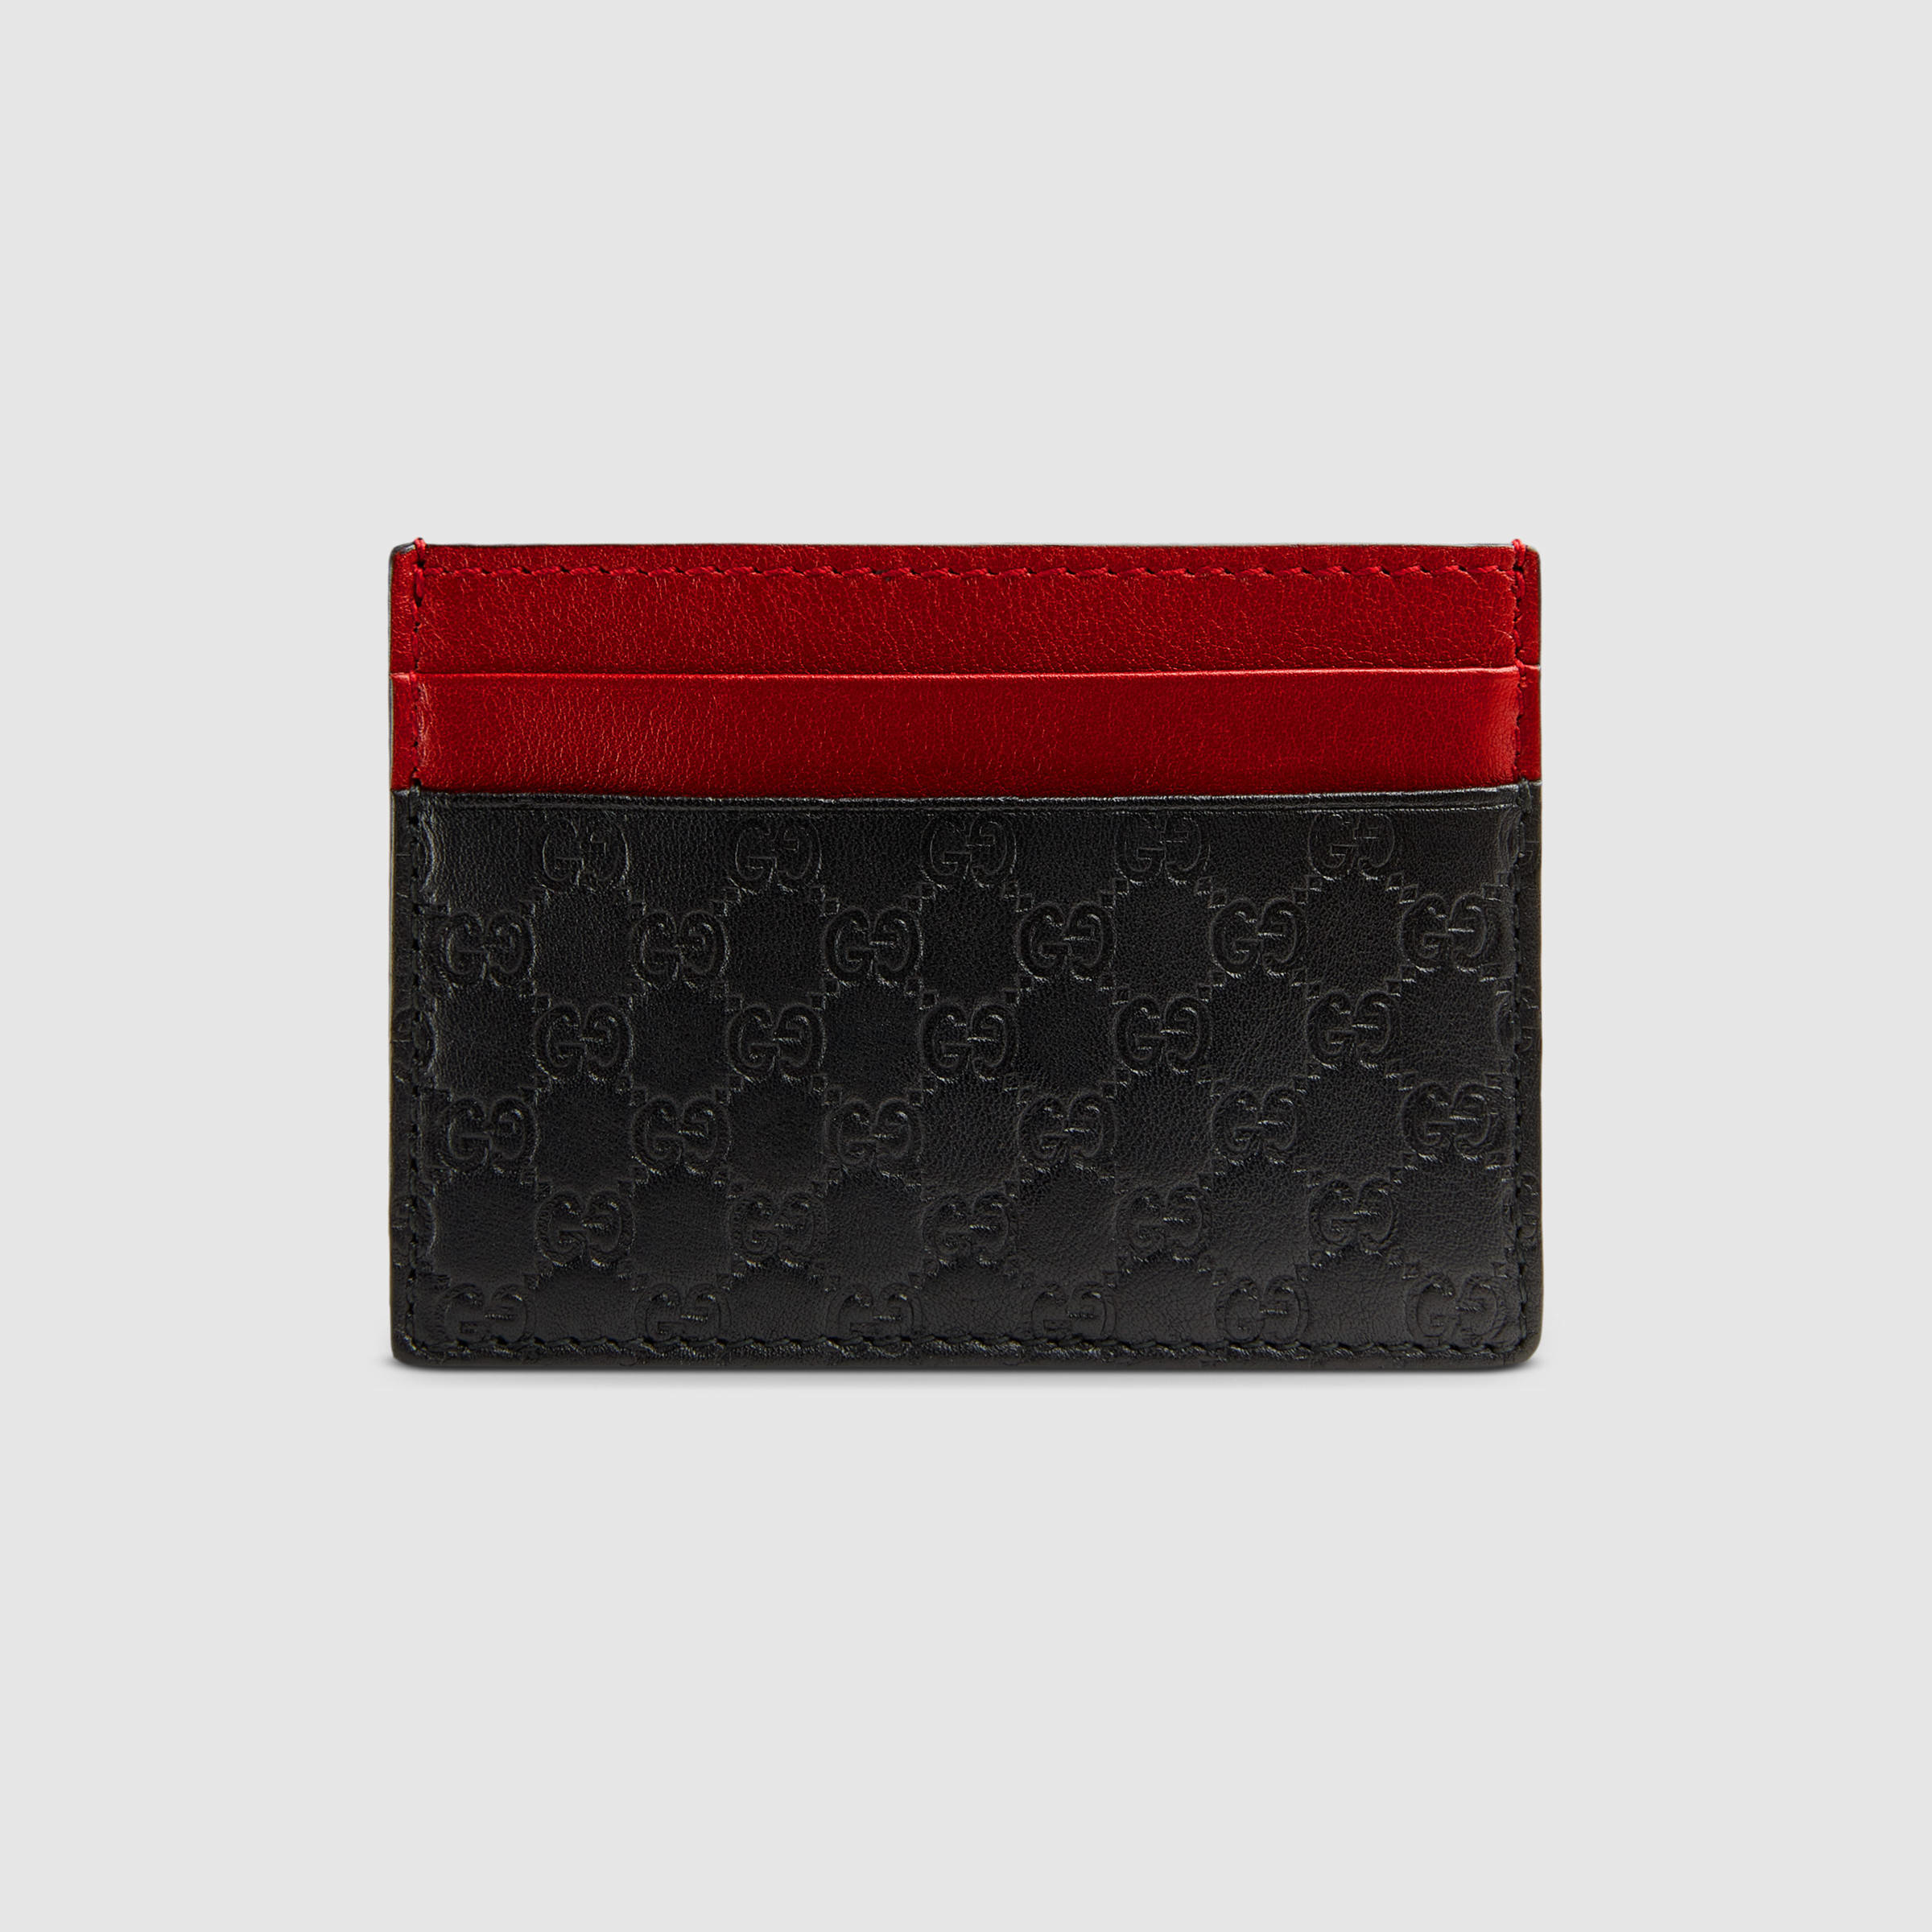 fee136ec8dc2 Gucci Microguccissima Card Case in Red for Men - Lyst